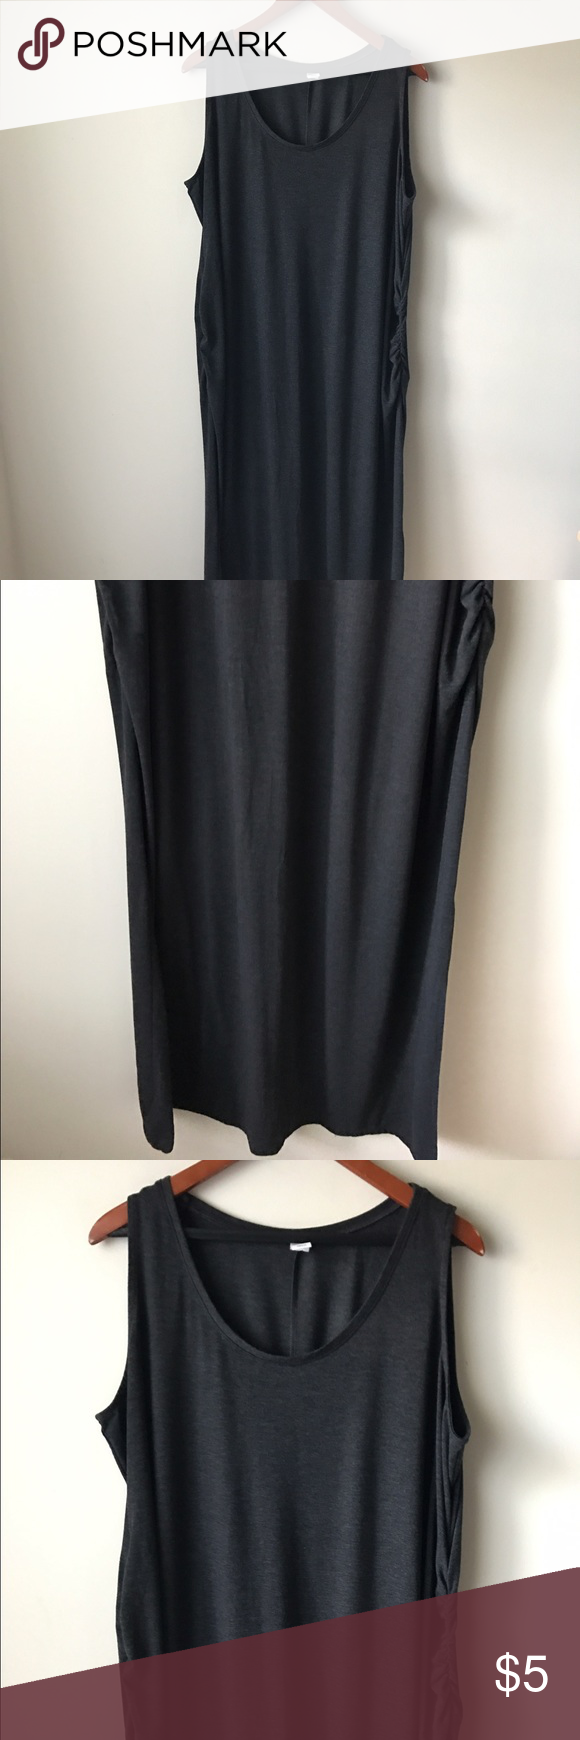 "Old Navy grey maternity maxi dress Charcoal grey colored maternity maxi dress - side ruching - not lined - stretchy - chest across measures 23"" - total length measures 54"" - size XXL Old Navy Dresses Maxi"